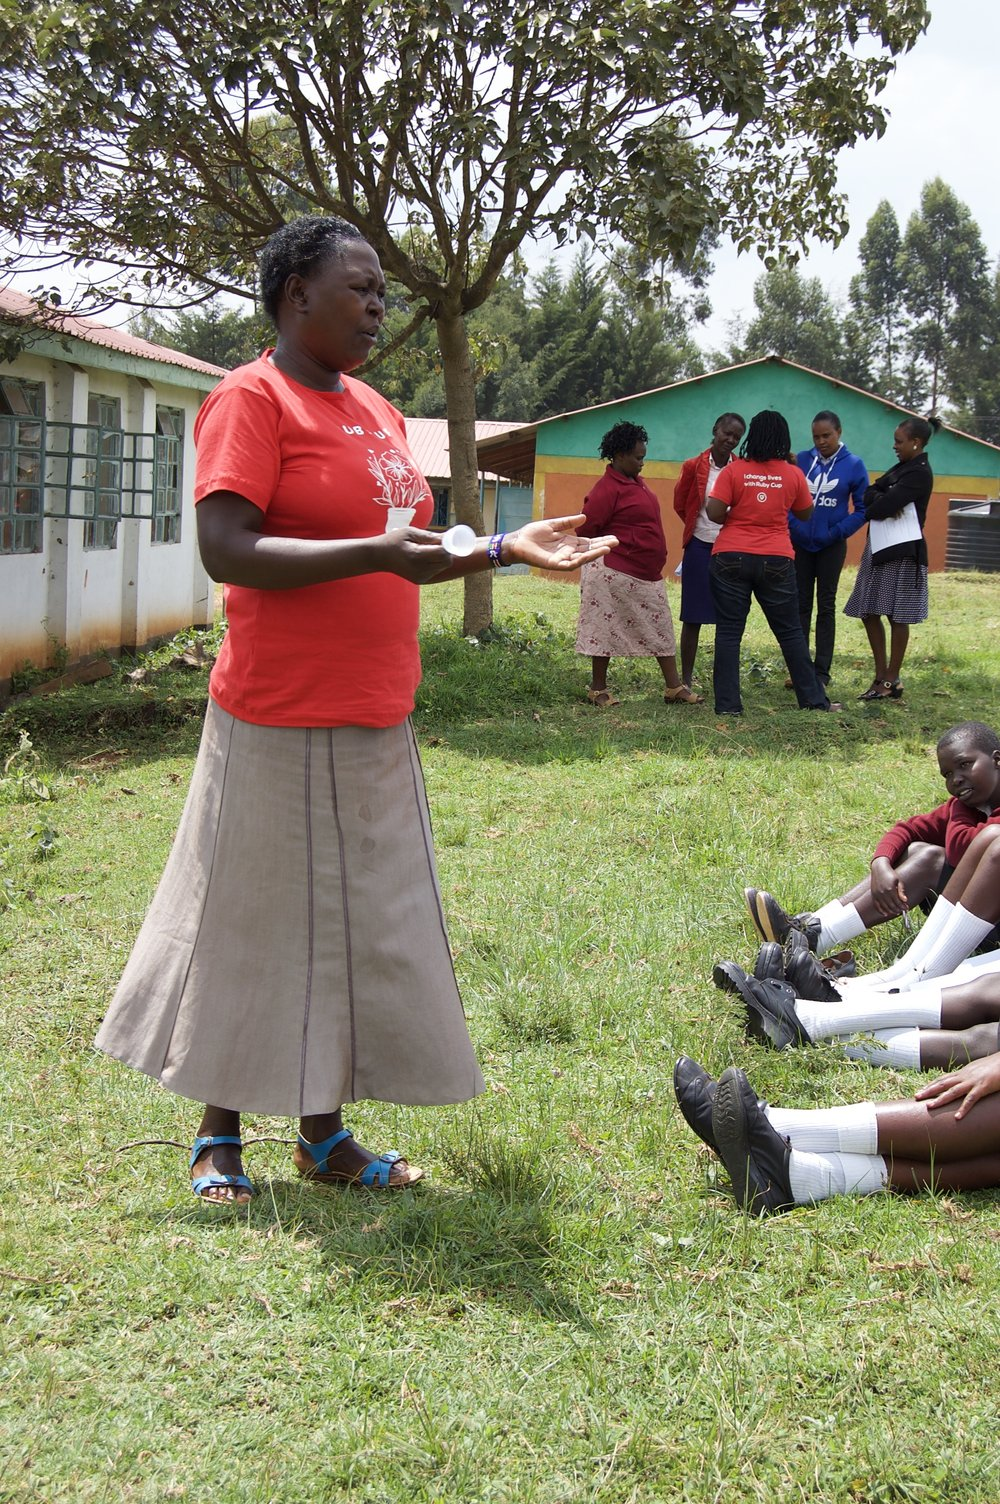 Miriam, a trained mentor from GGF, answers questions of how to use and care for the Ruby Cup.